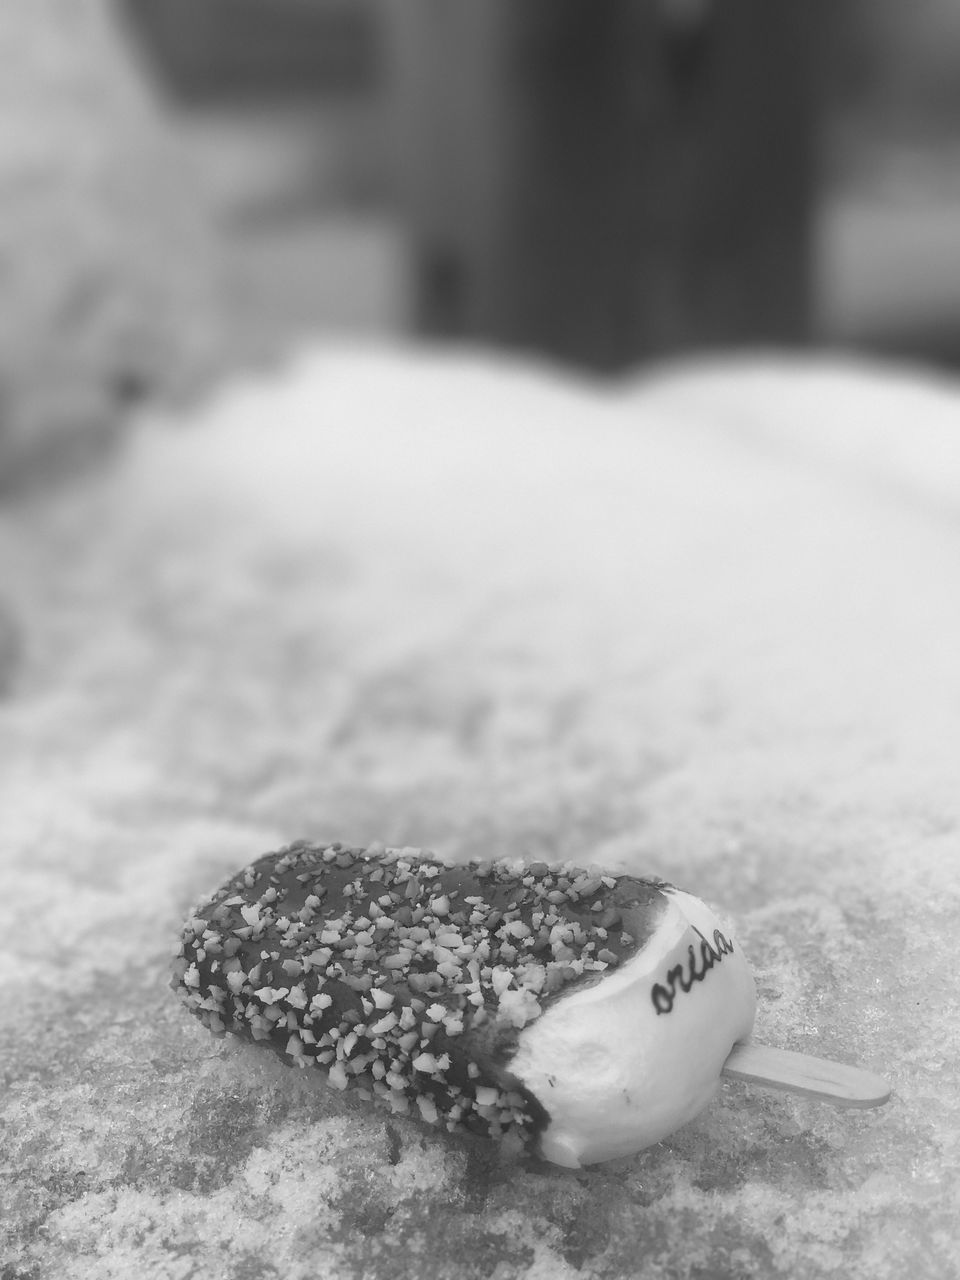 close-up, no people, sand, one animal, beach, animal themes, day, food, indoors, nature